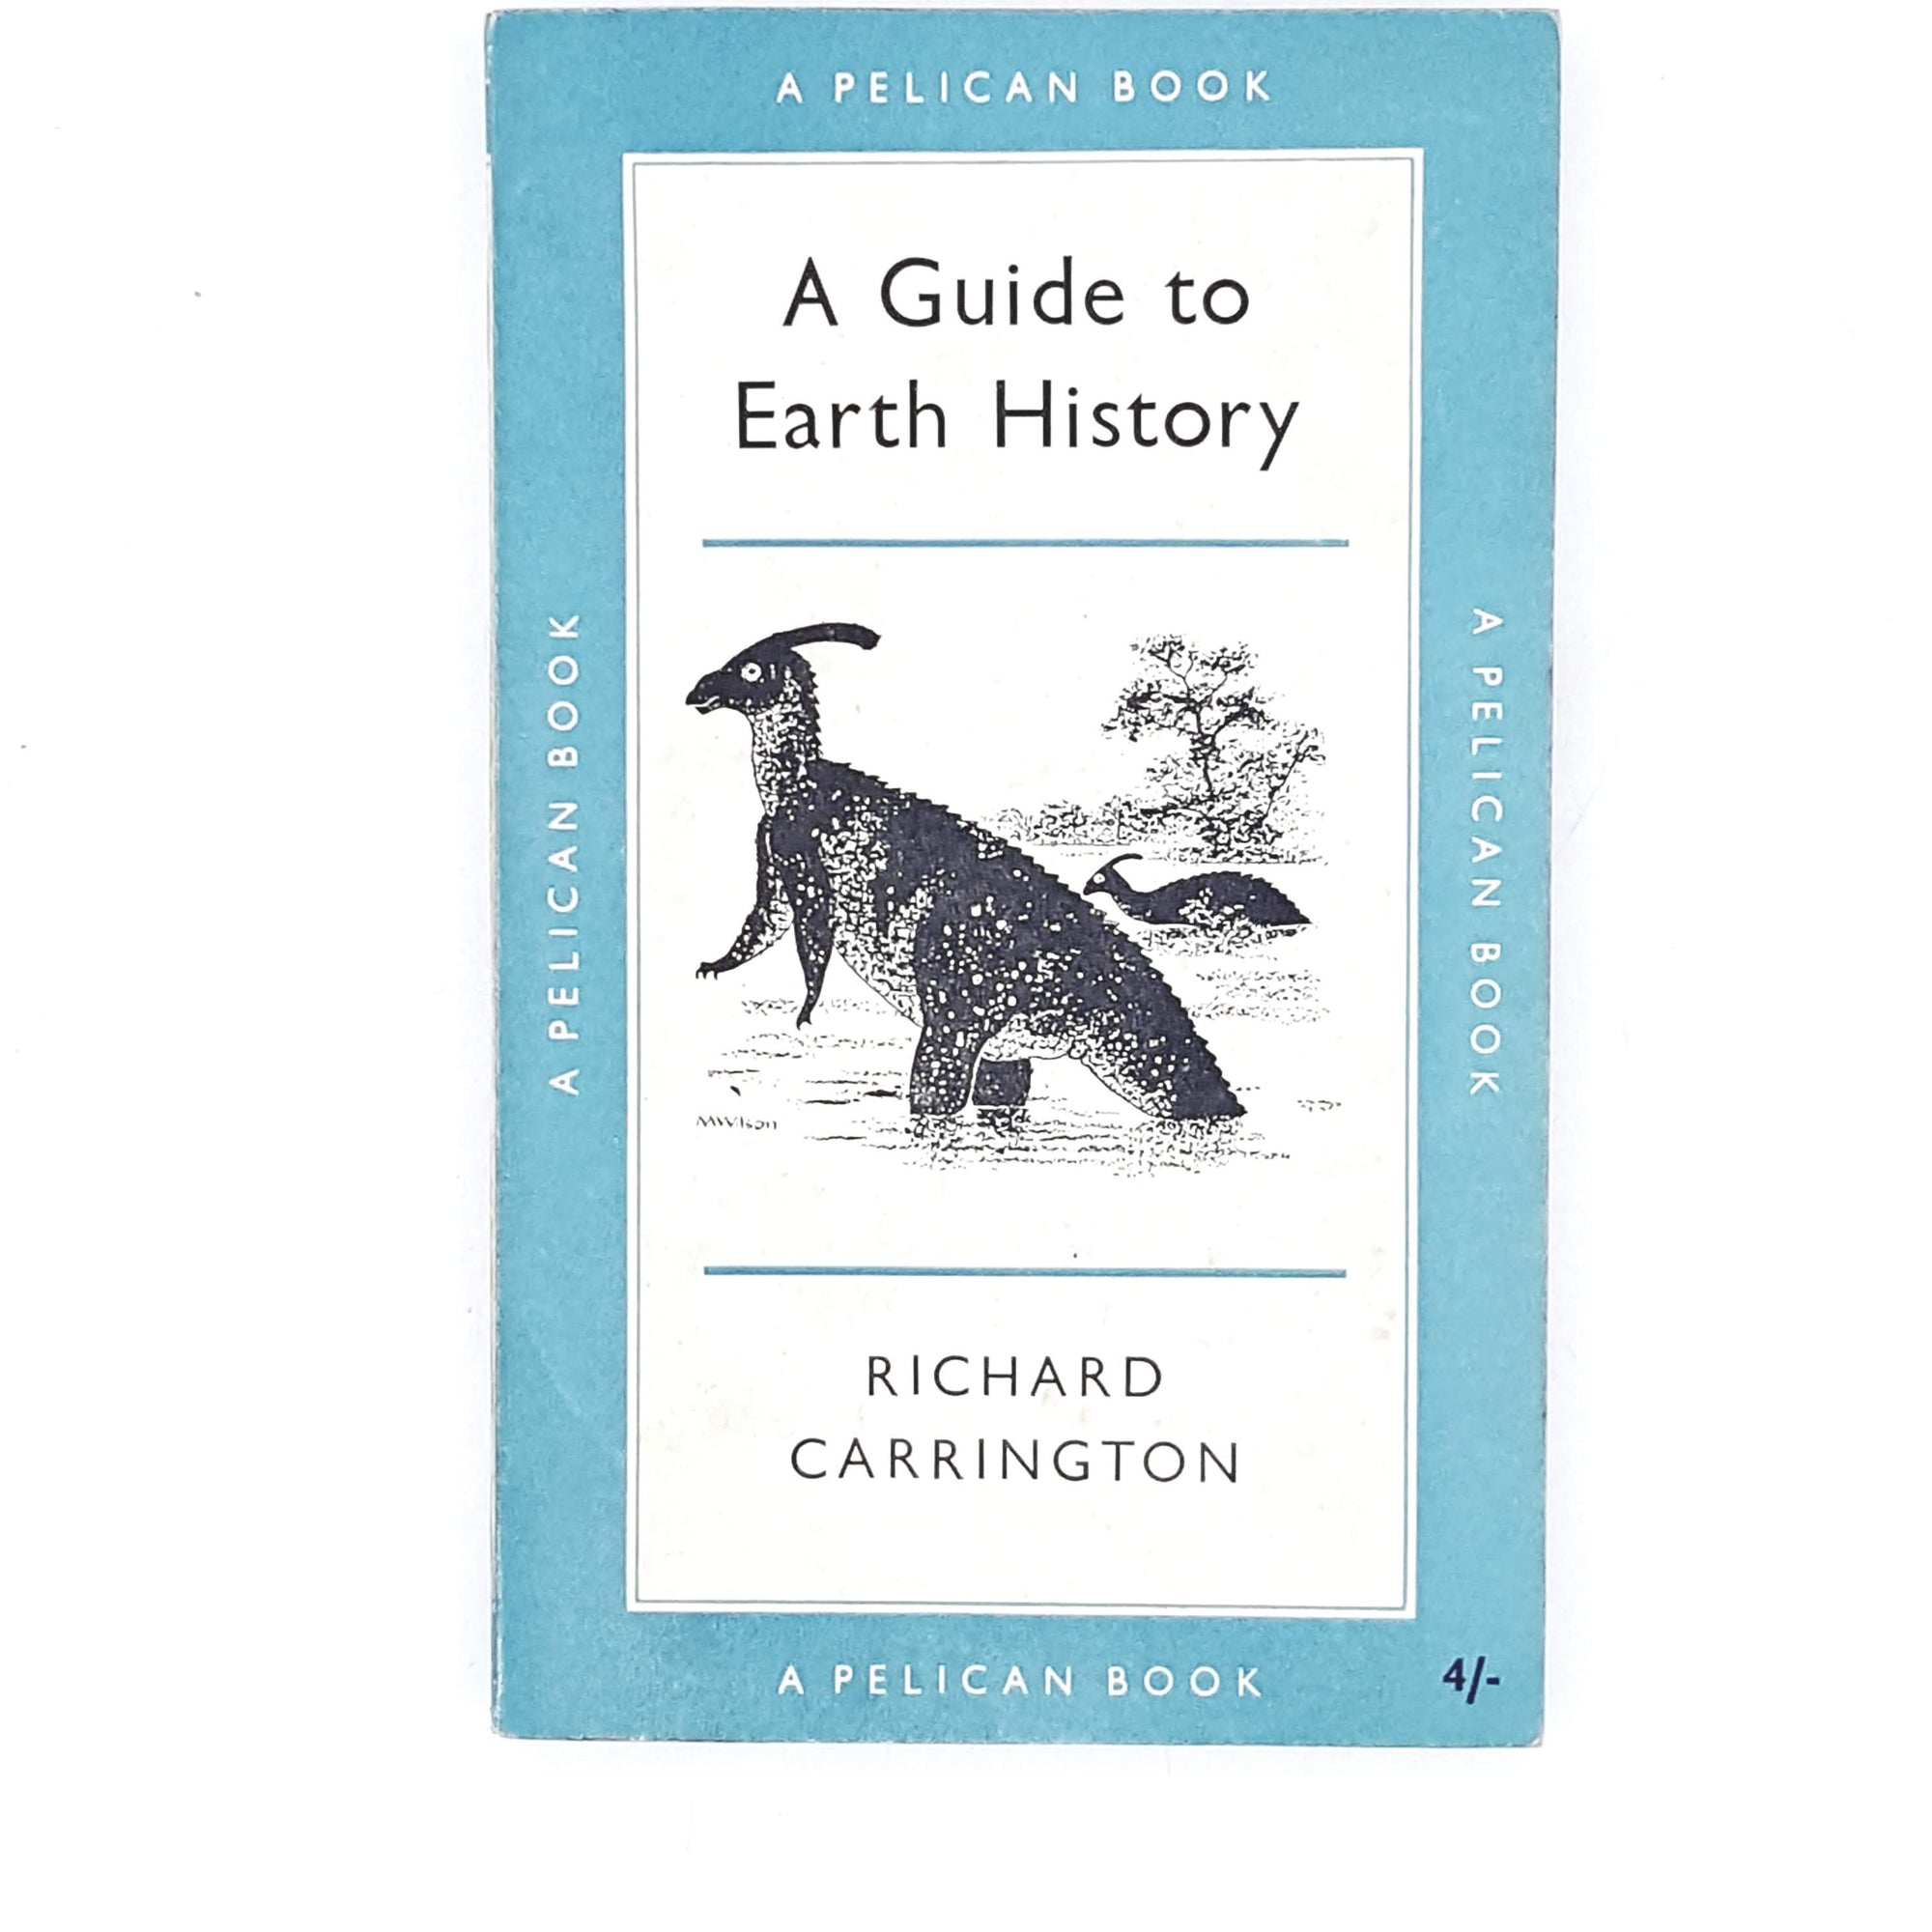 vintage-pelican-a-guide-to-earth-history-by-richard-carrington-1958-pale-blue-country-house-library